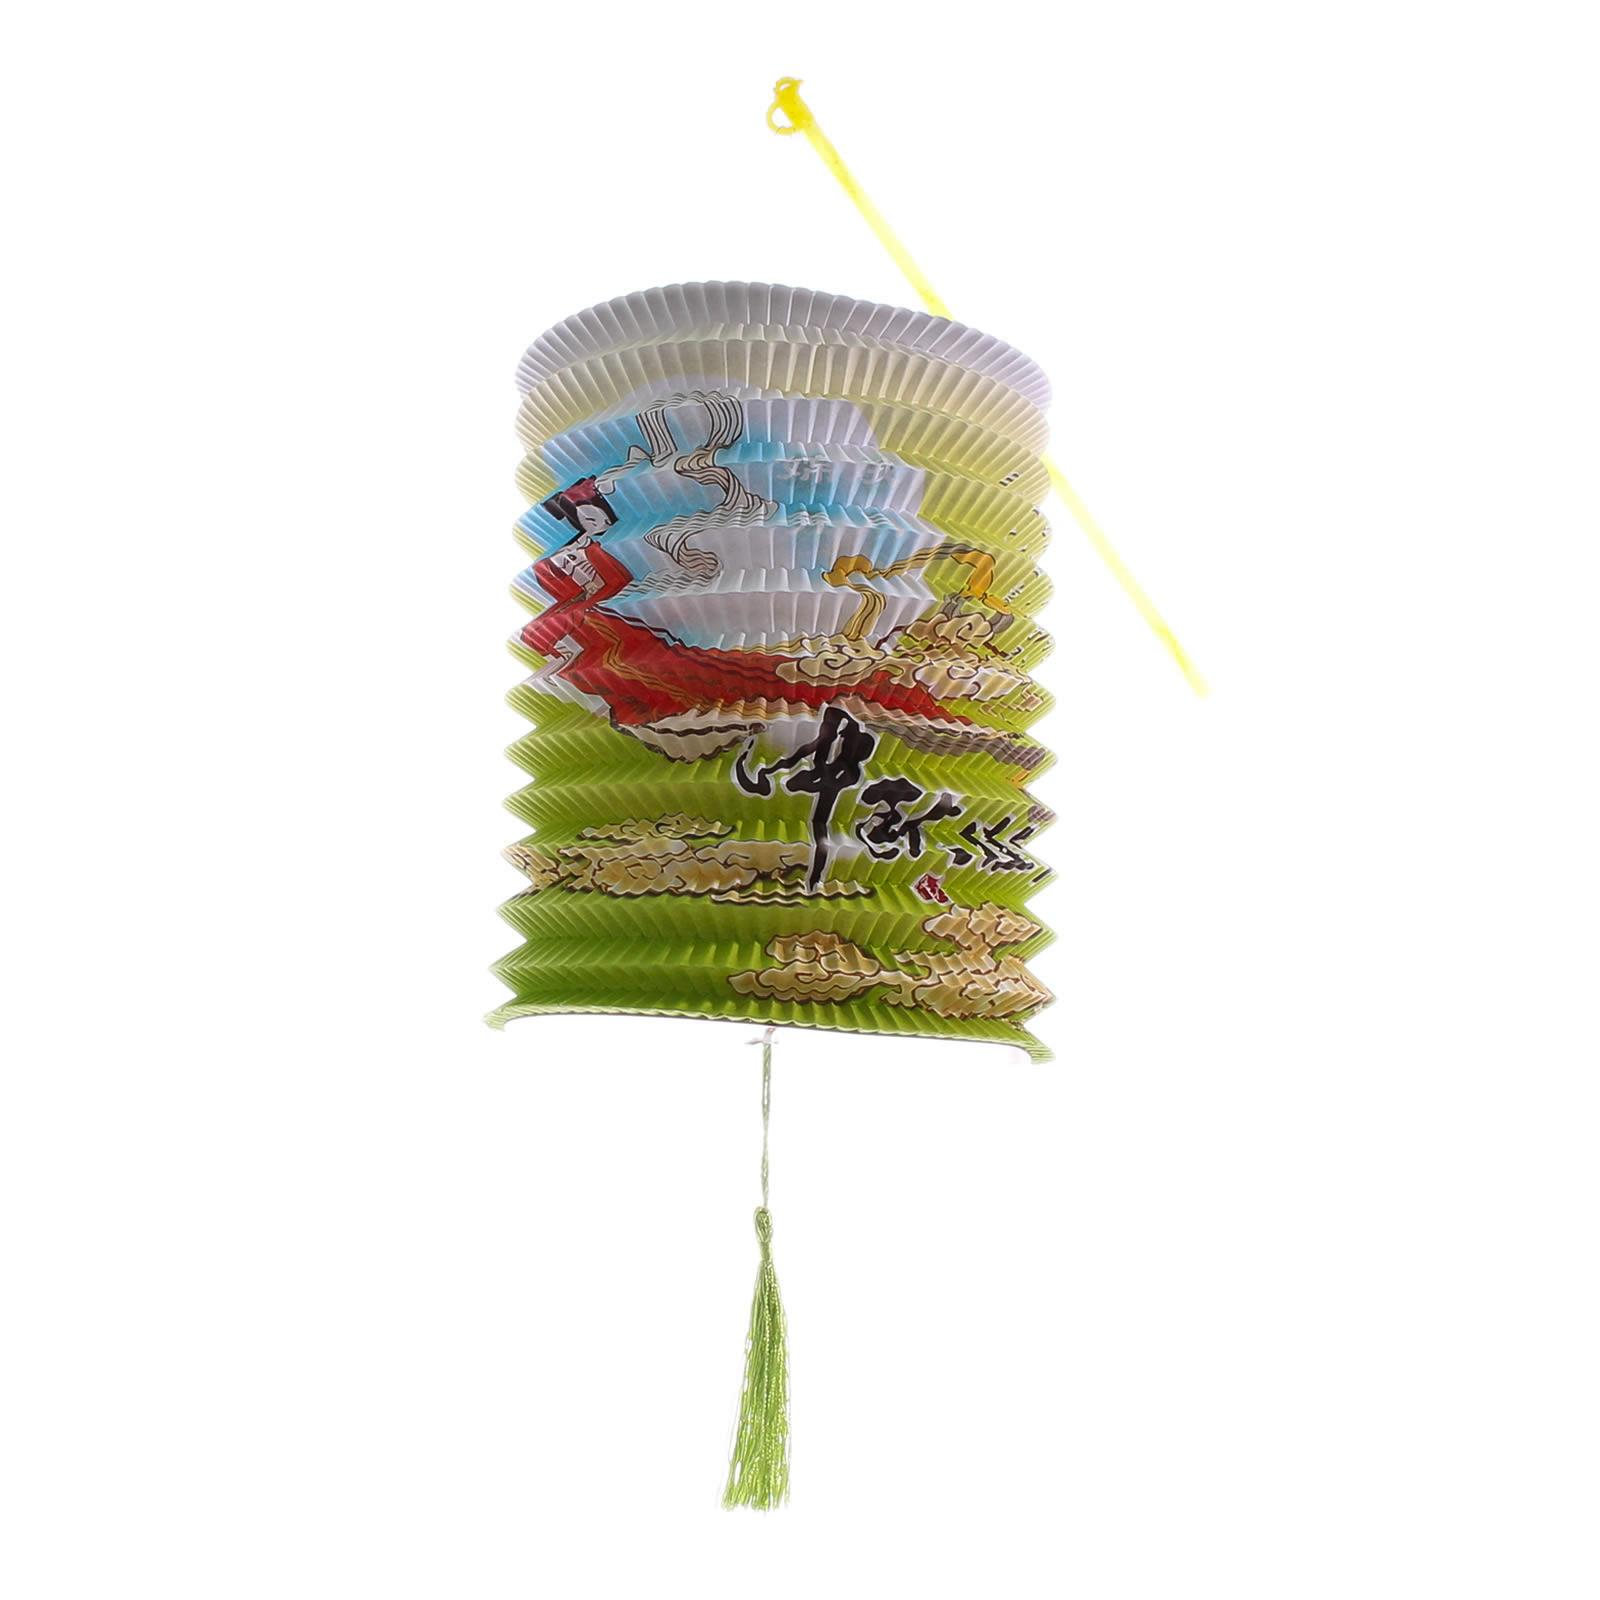 [LOCAL SELLER] 6PC Changer Paper Lantern Set - Mid Autumn, Lantern Festival Decoration